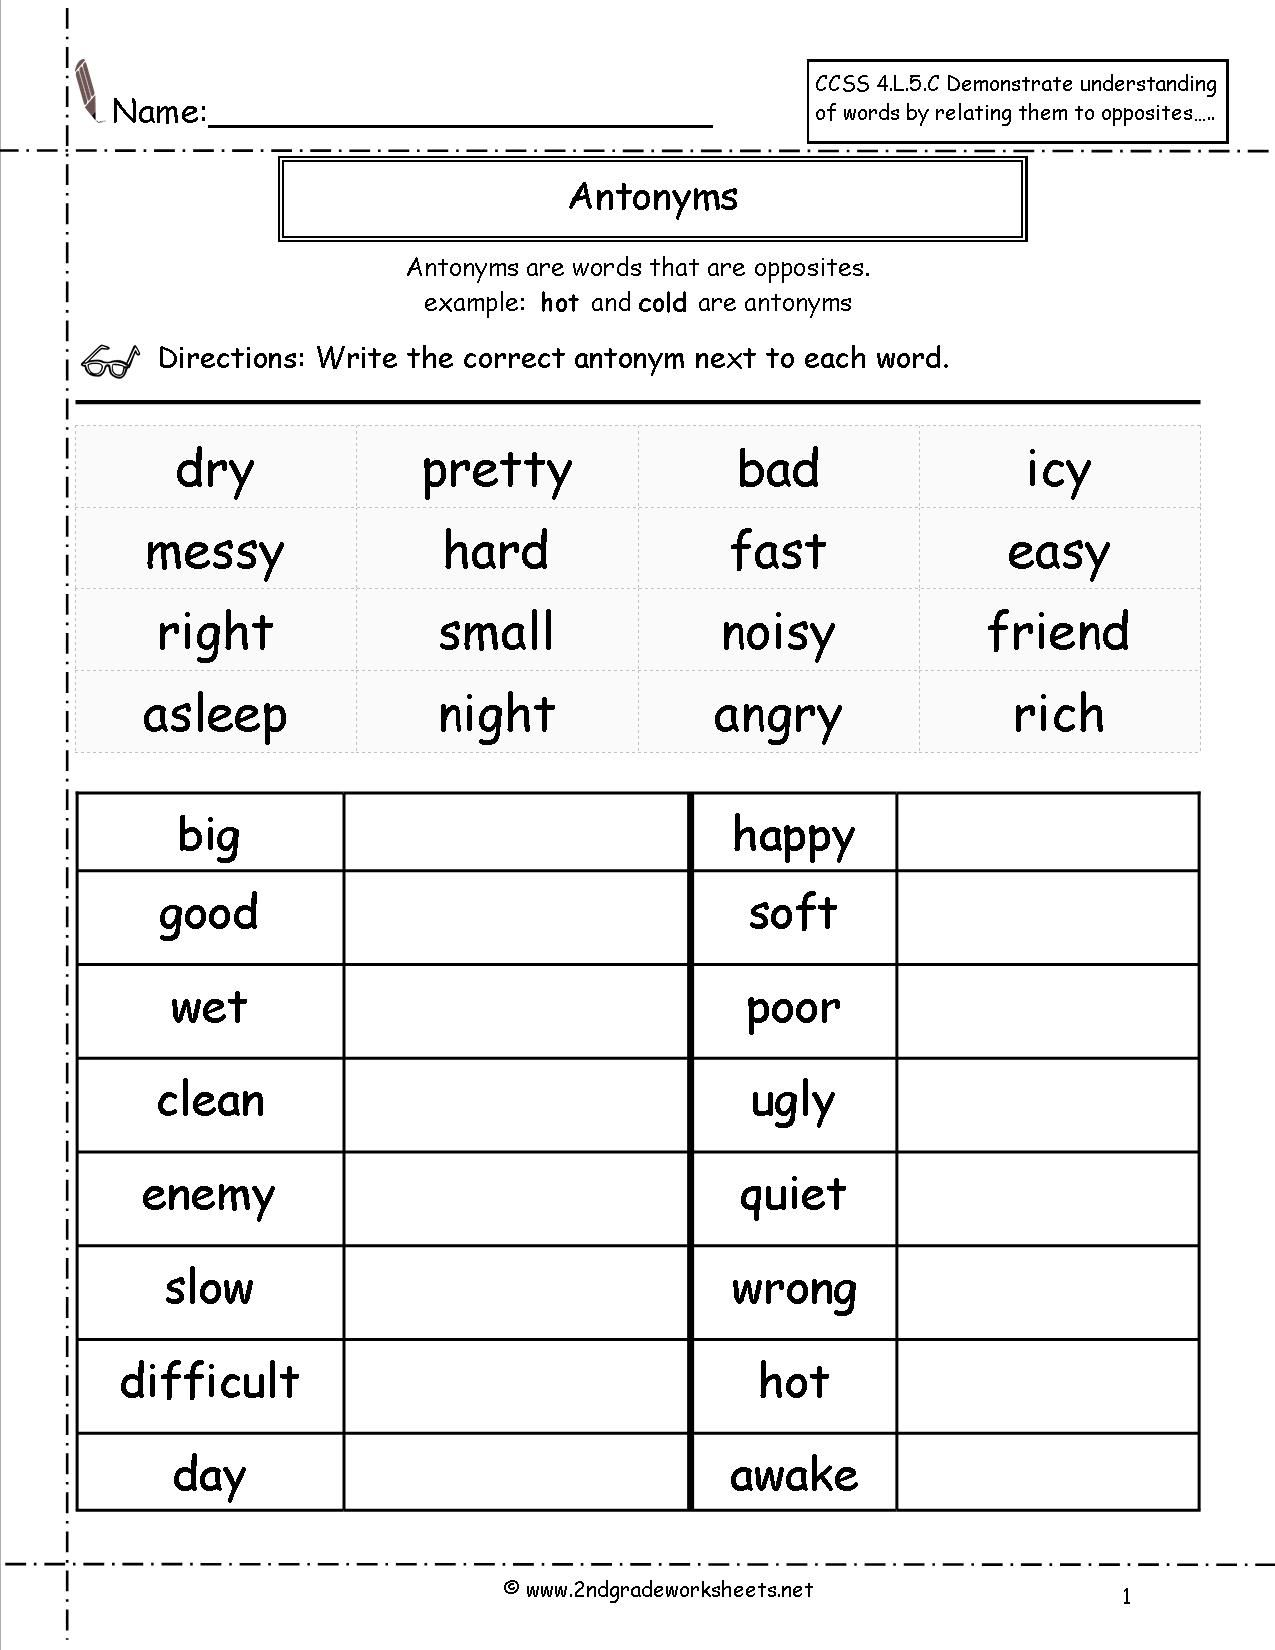 English Grammar Worksheets For Grade 2 With Answers [ 1650 x 1275 Pixel ]